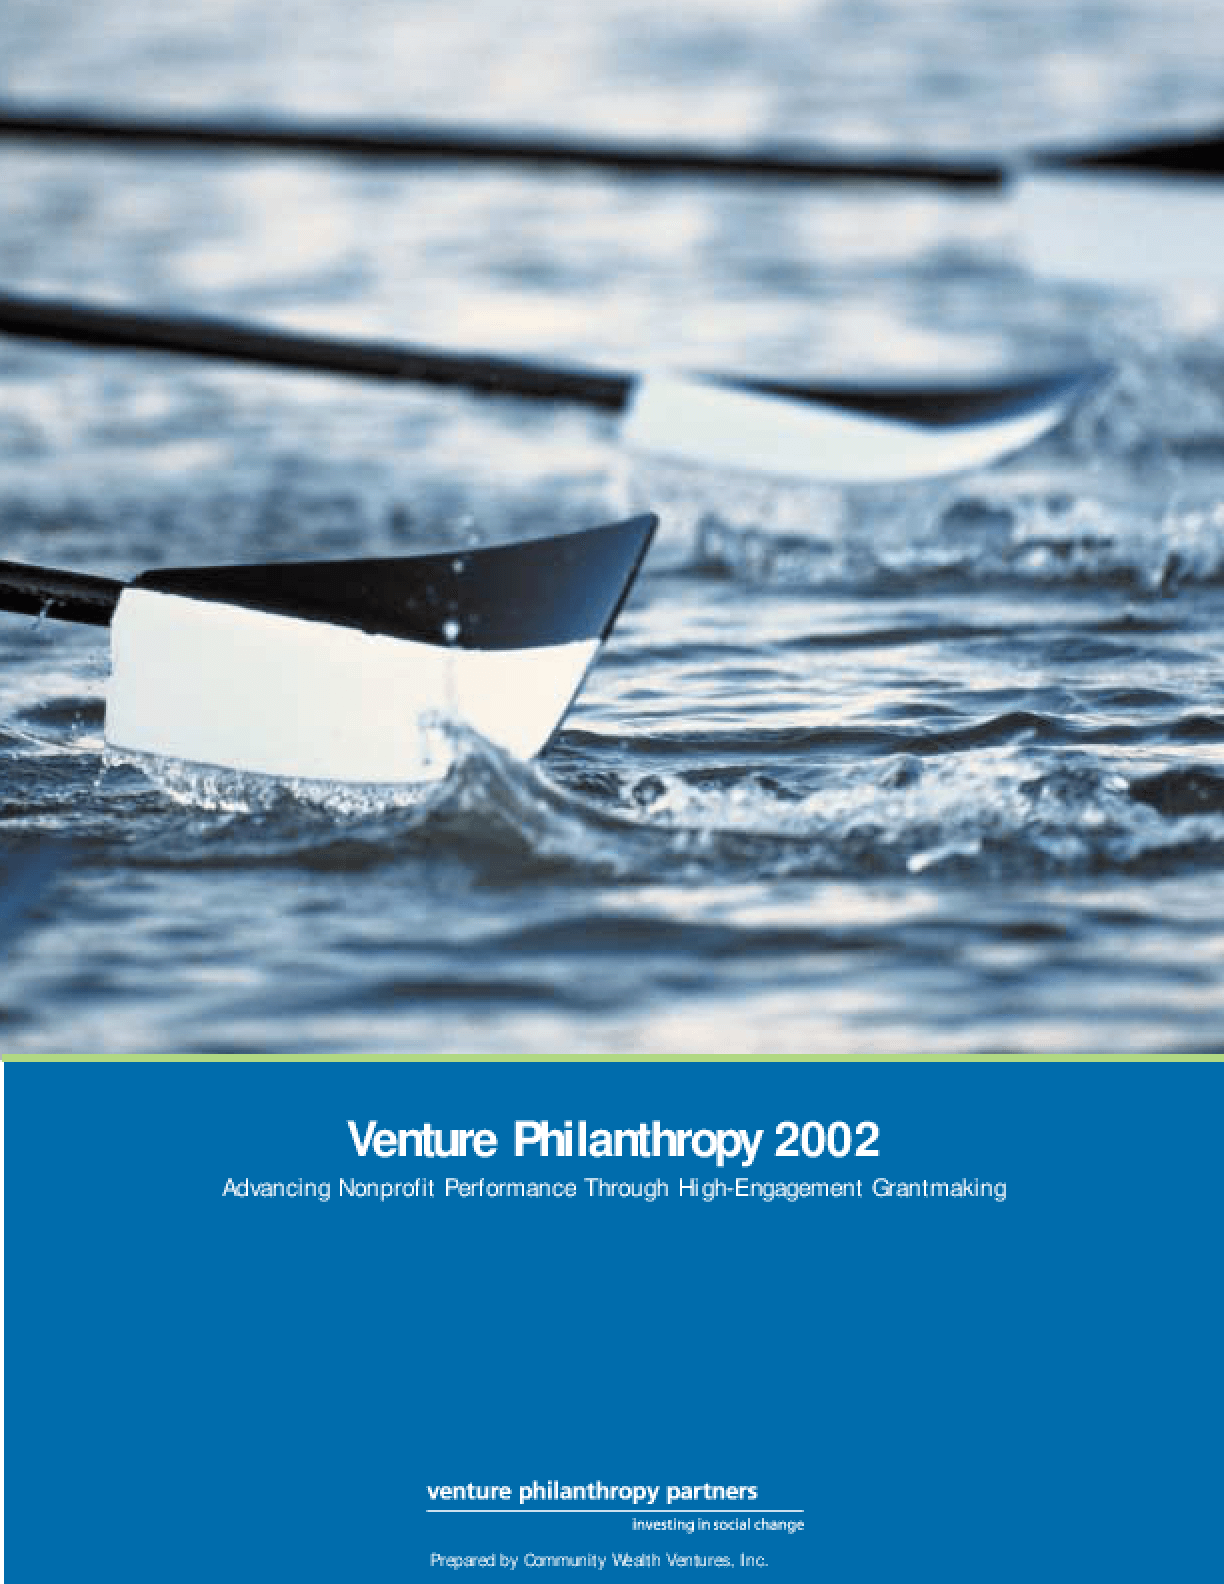 Venture Philanthropy 2002: Advancing Nonprofit Performance Through High-engagement Grantmaking: Lessons, Essays, and a Survey of Venture Philanthropy Funds